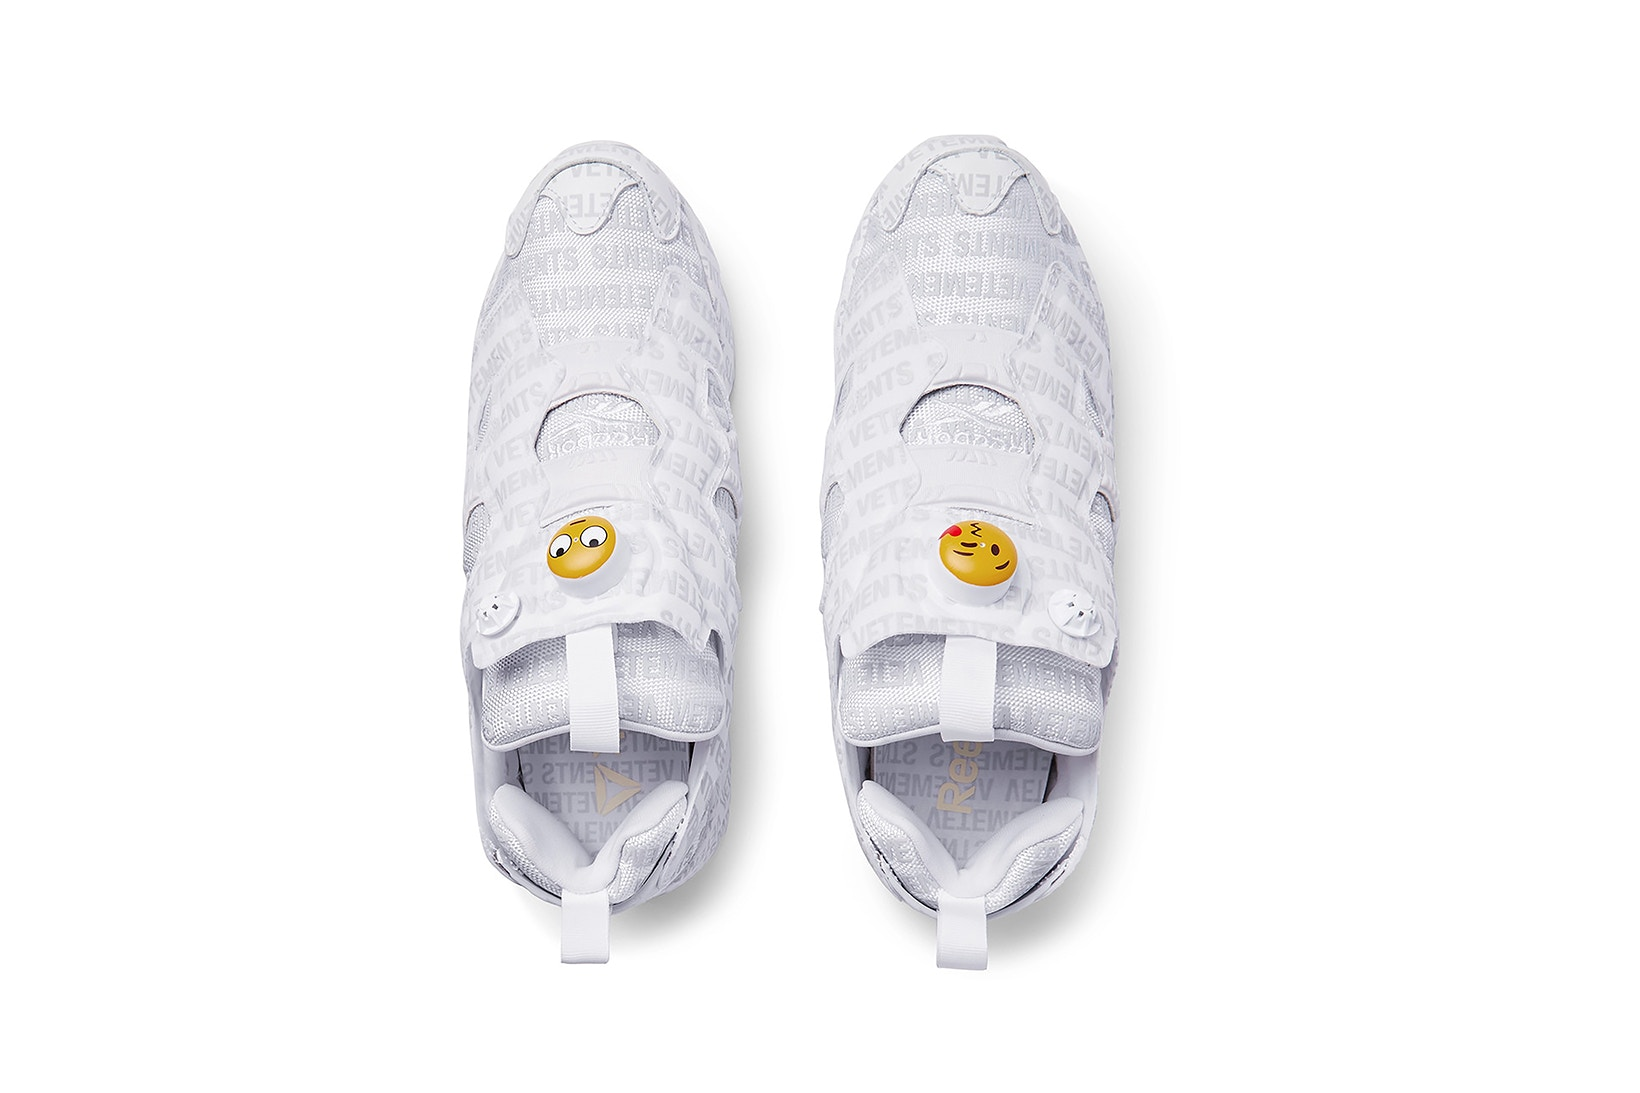 mr-porter-vetements-reebok-instapump-fury-emoji-04